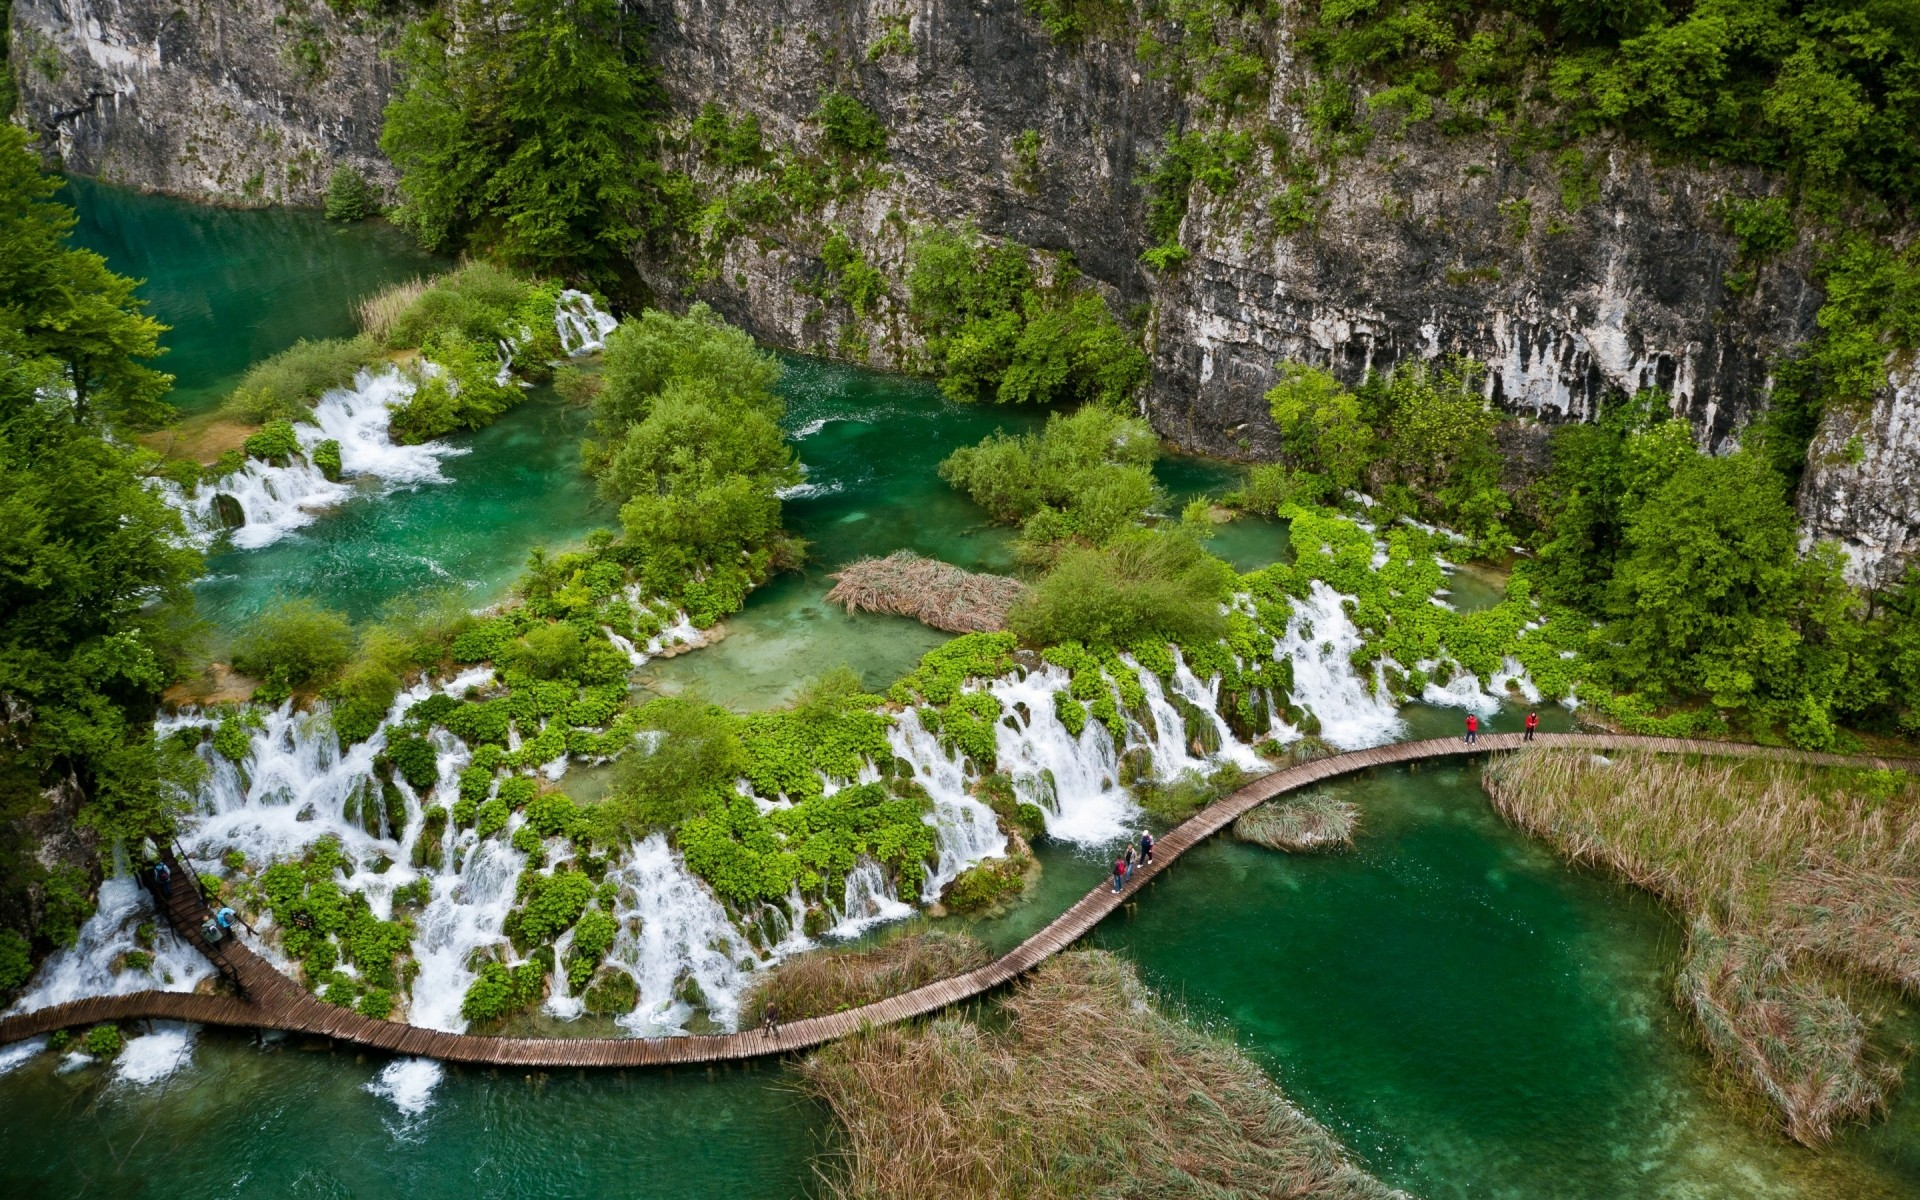 landscapes water travel nature landscape tree rock wood river mountain outdoors summer scenic lake waterfall stream sight tourism vacation tropical rockery bridge